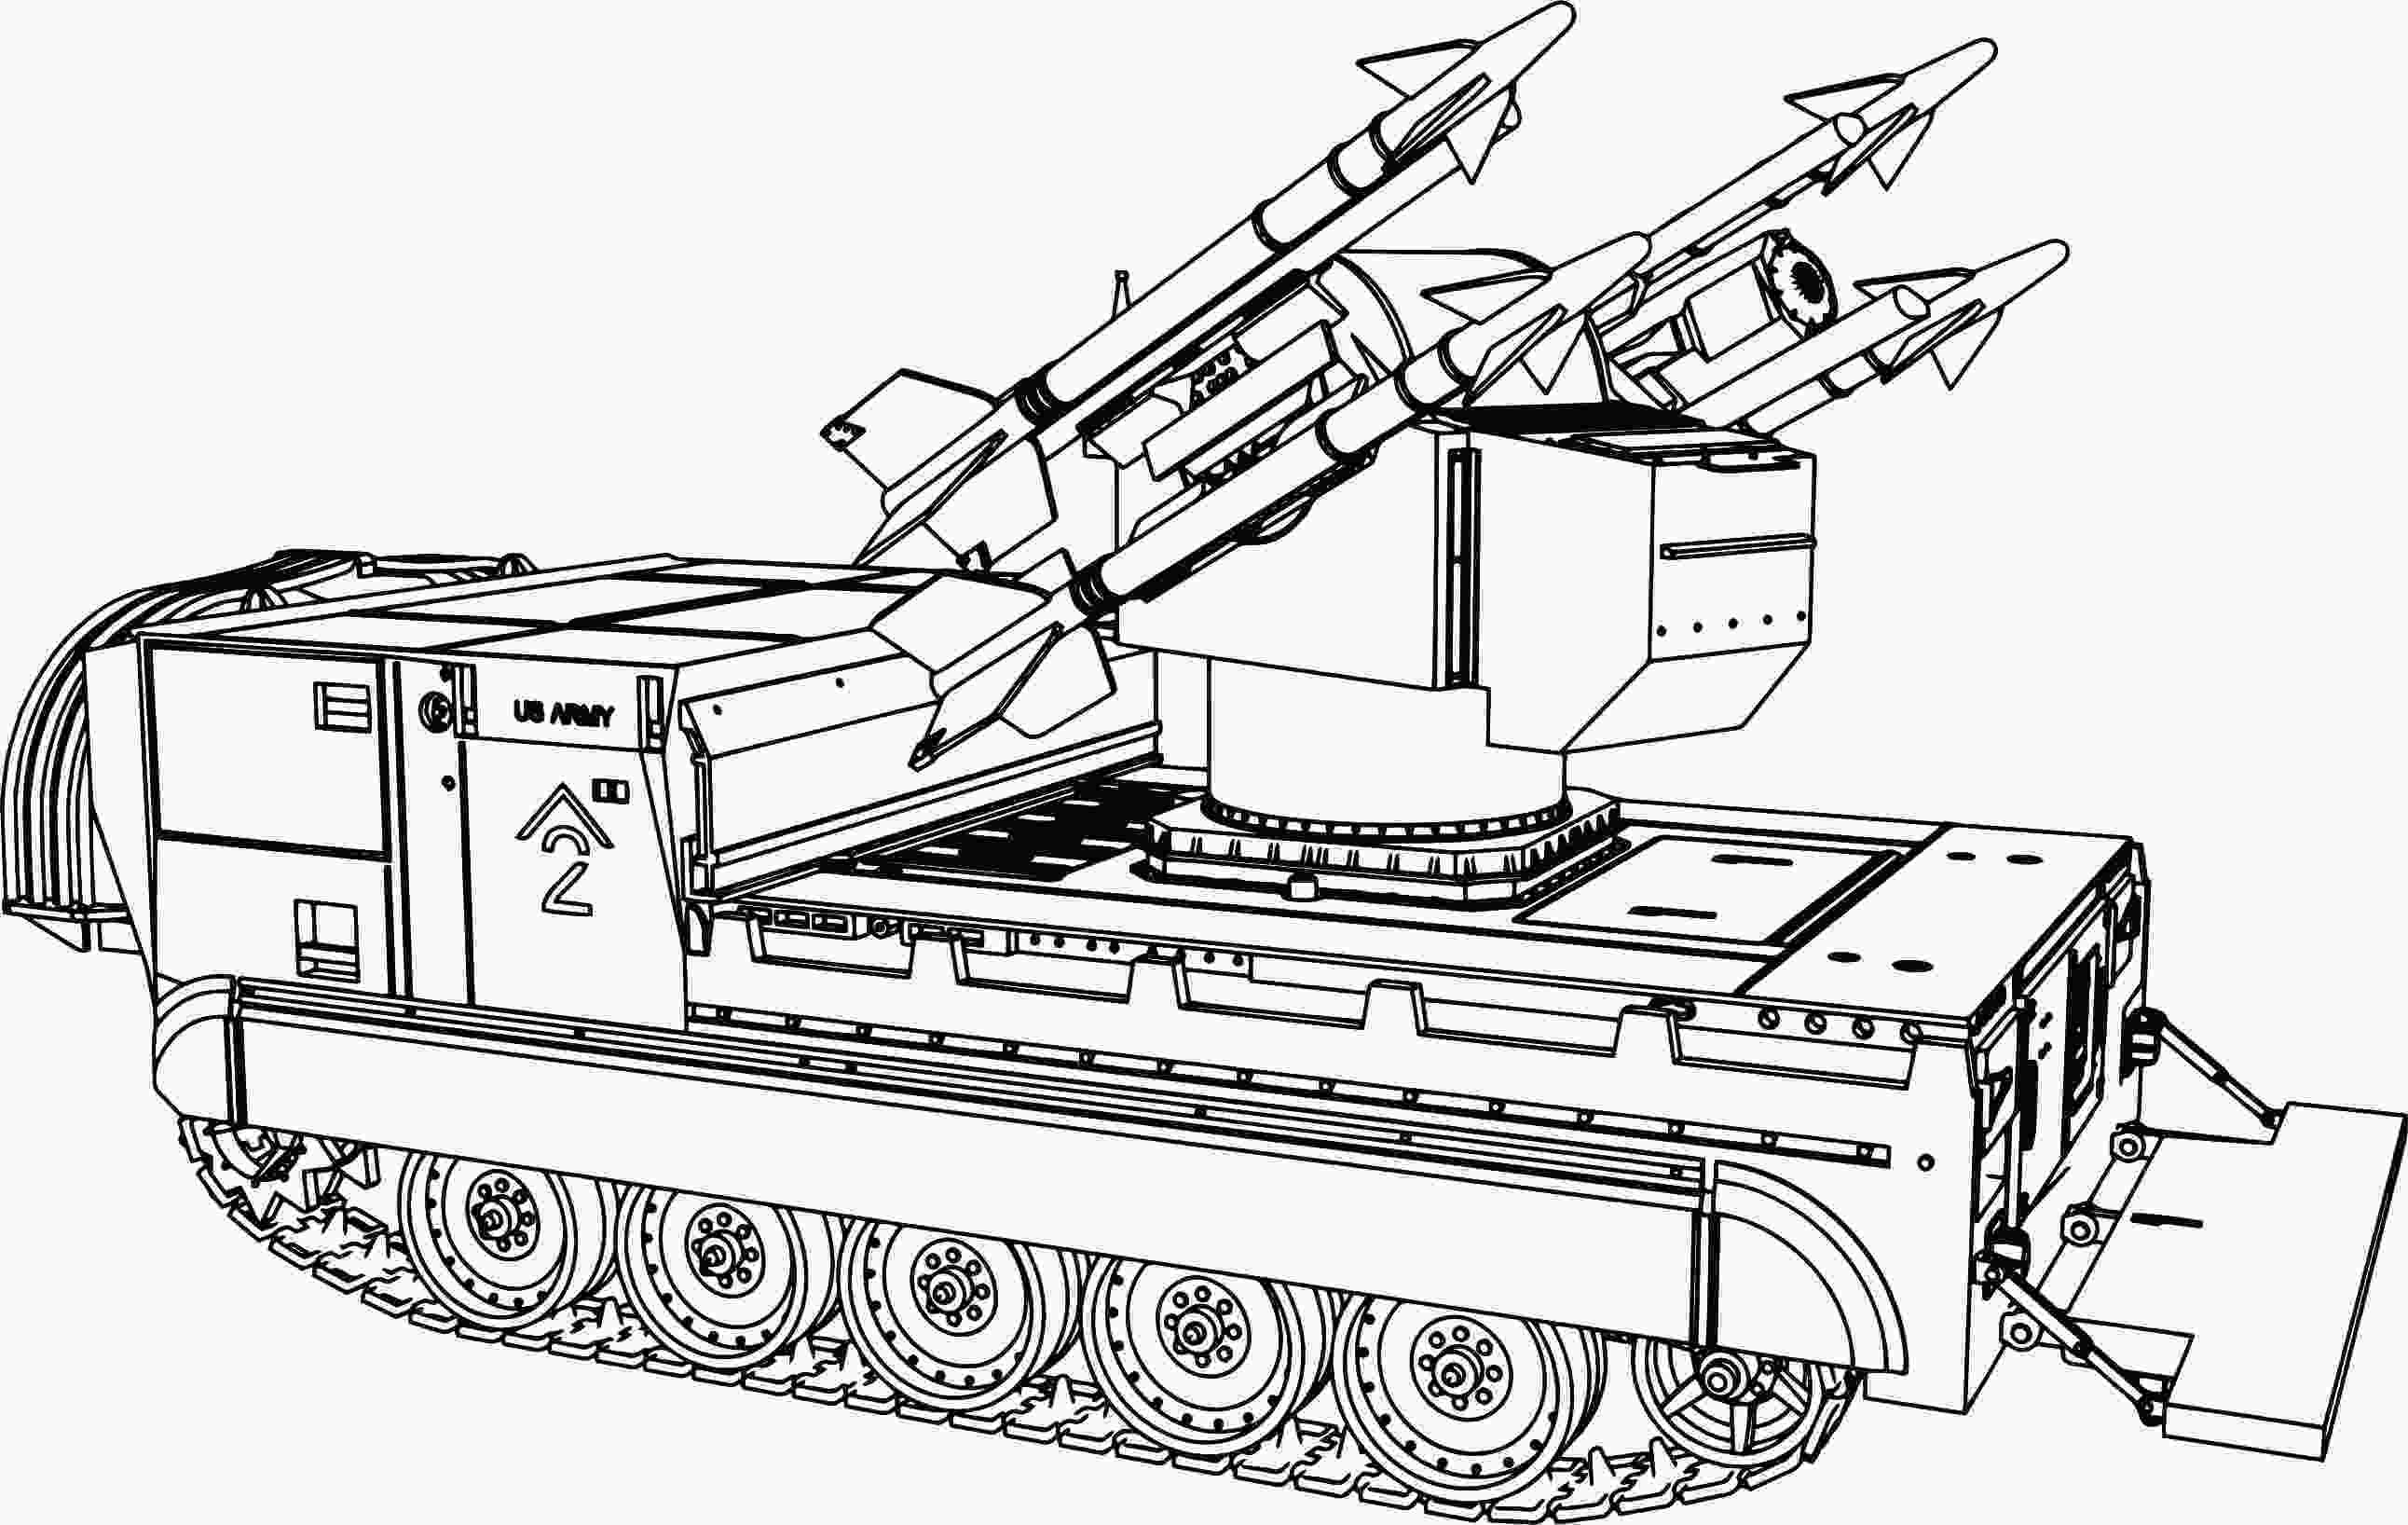 army tank coloring pictures us army coloring page throughout pages tank drawing coloring tank pictures army